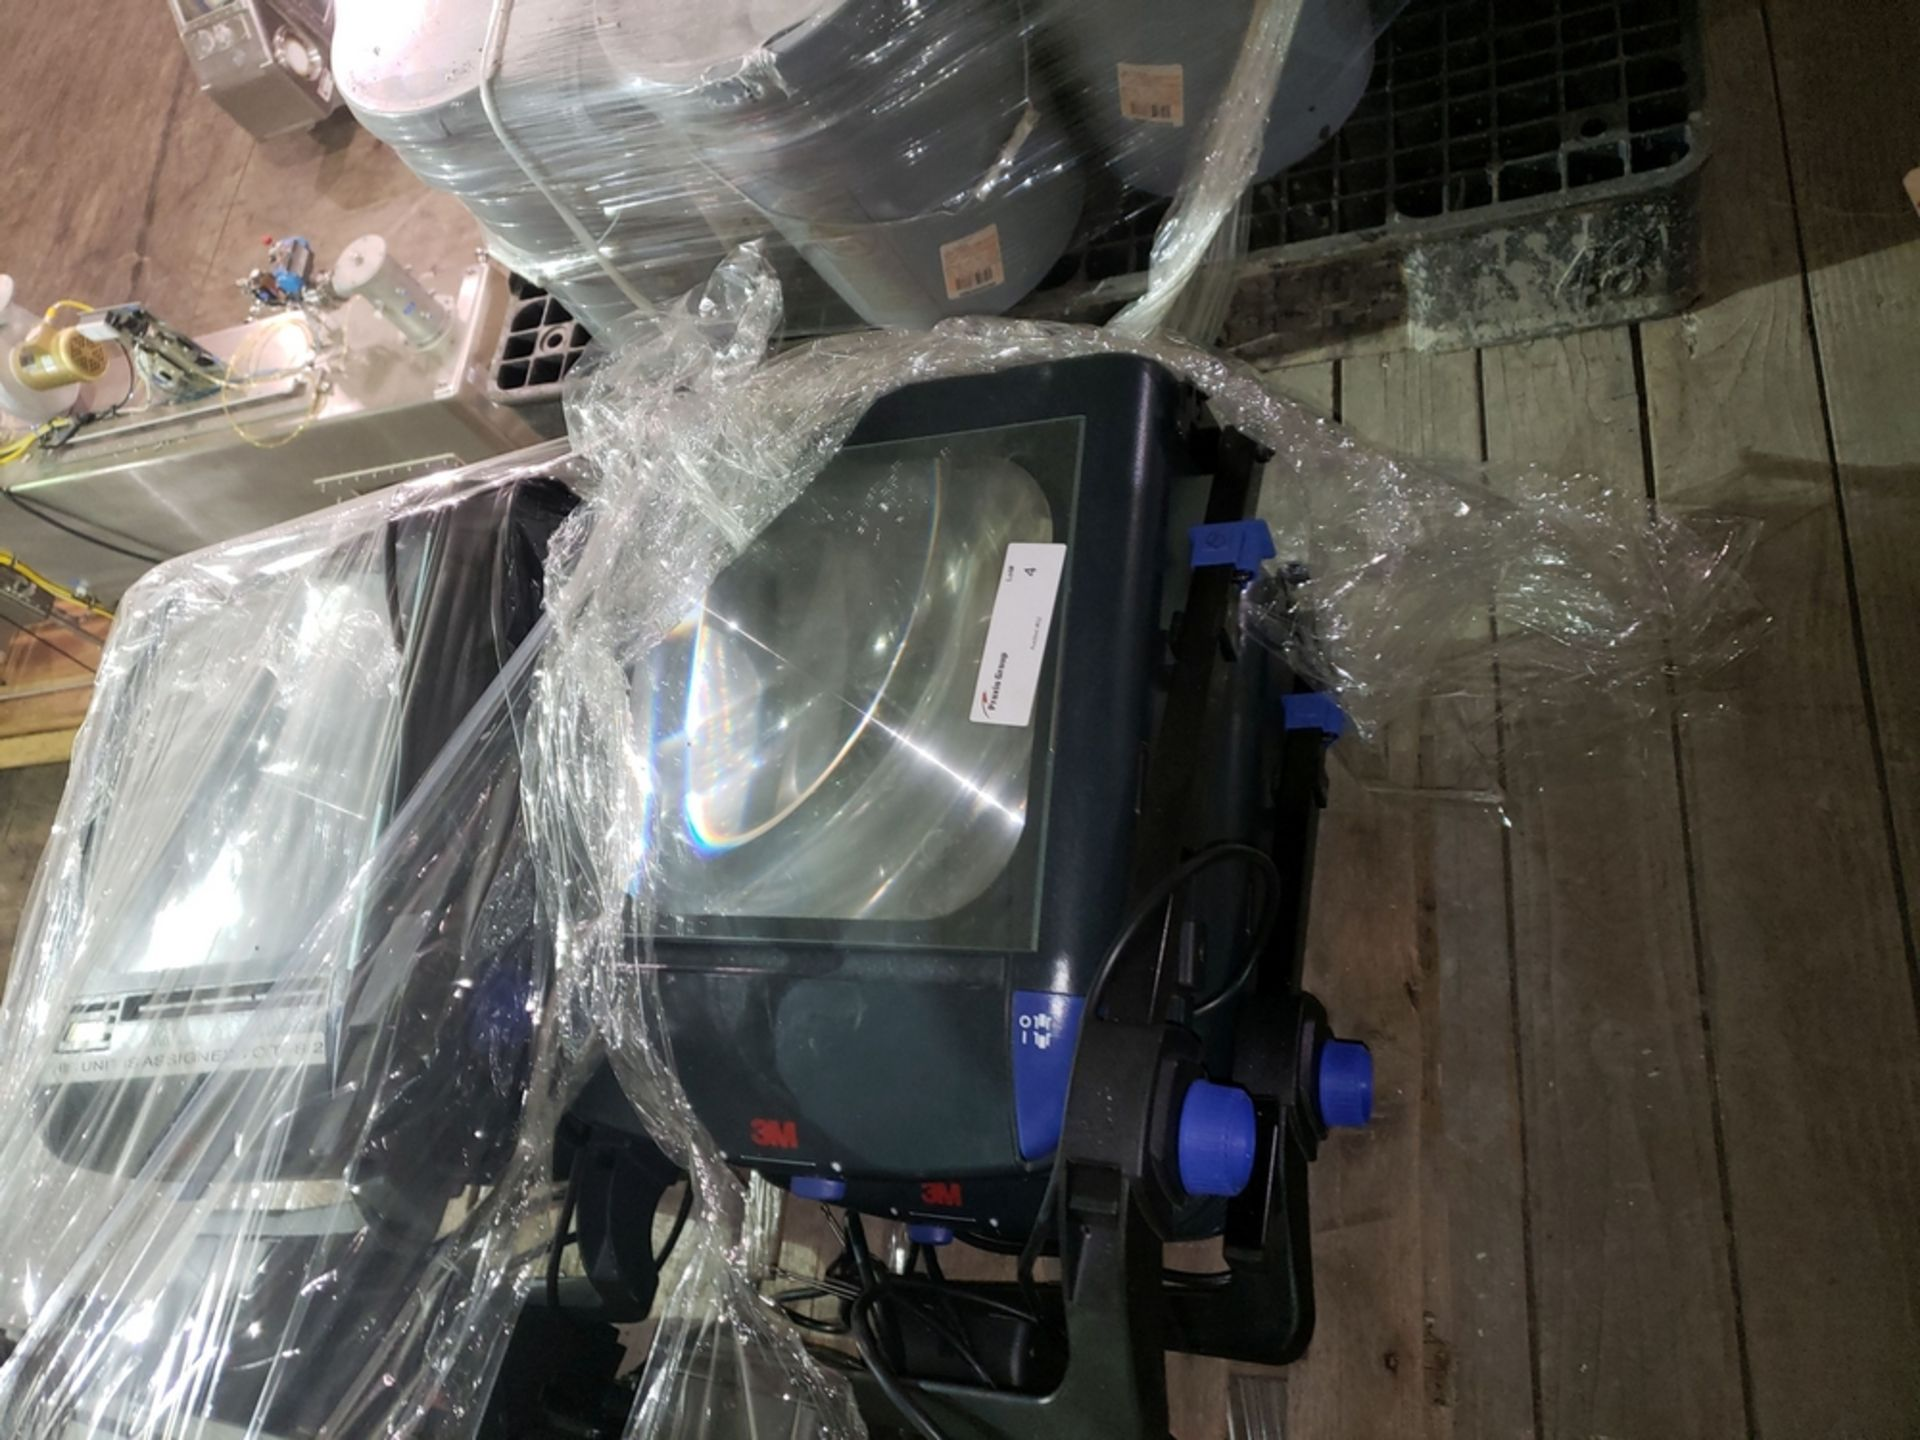 Lot 4 - Pallet of Overhead Projectors, approx (7) 3M overhead projectors, on skid